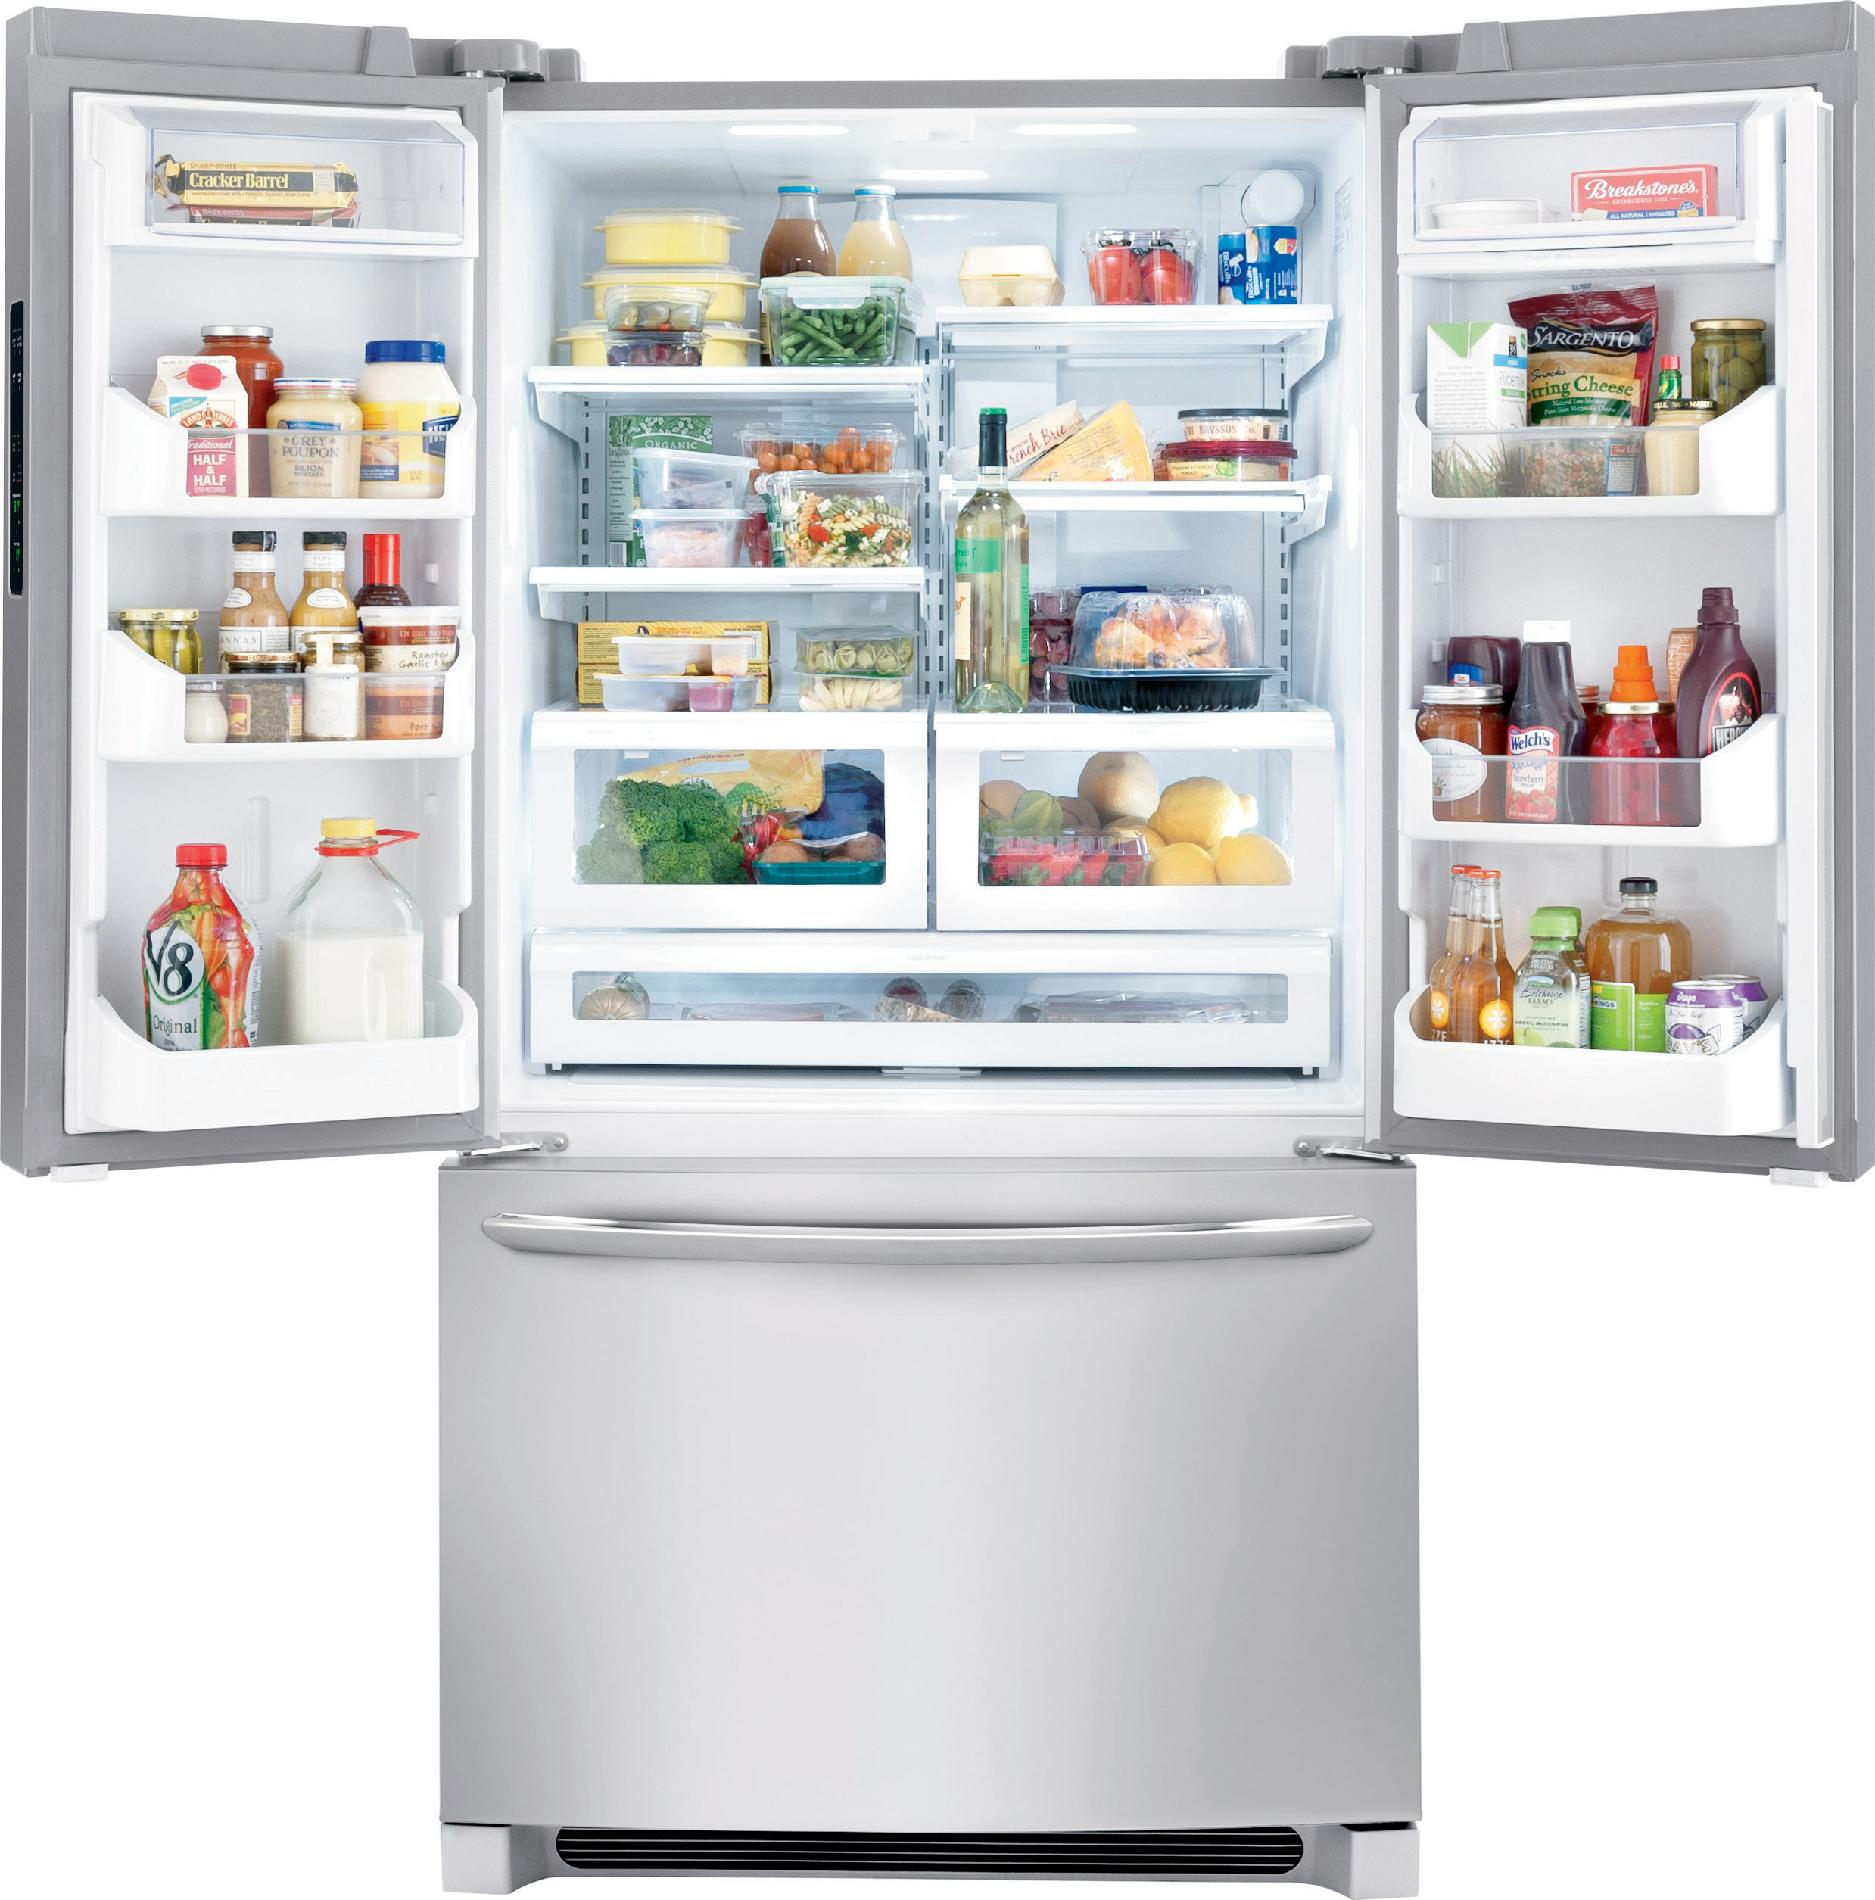 Frigidaire Gallery FGHG2366PF 22.6 cu. ft. Counter-Depth French Door Refrigerator - Stainless Steel